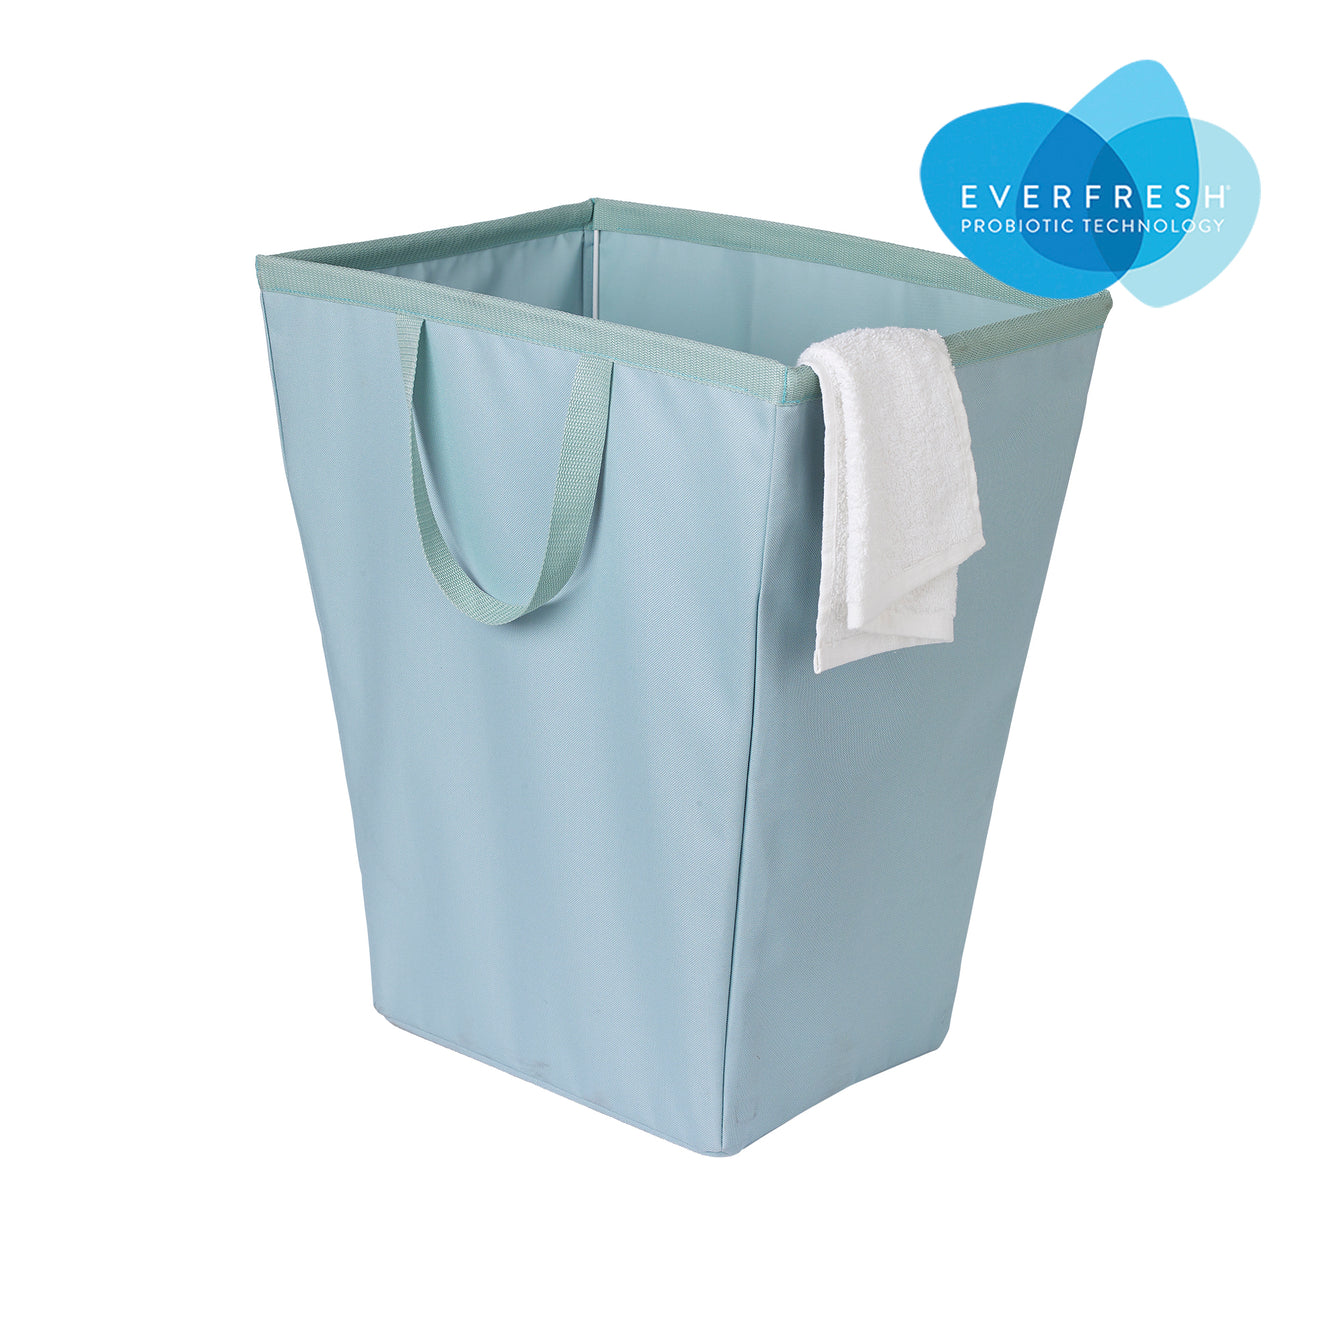 Easy Carry Flex Fabric Laundry Hamper-tote with EVERFRESH® Odor Control - Style 3214